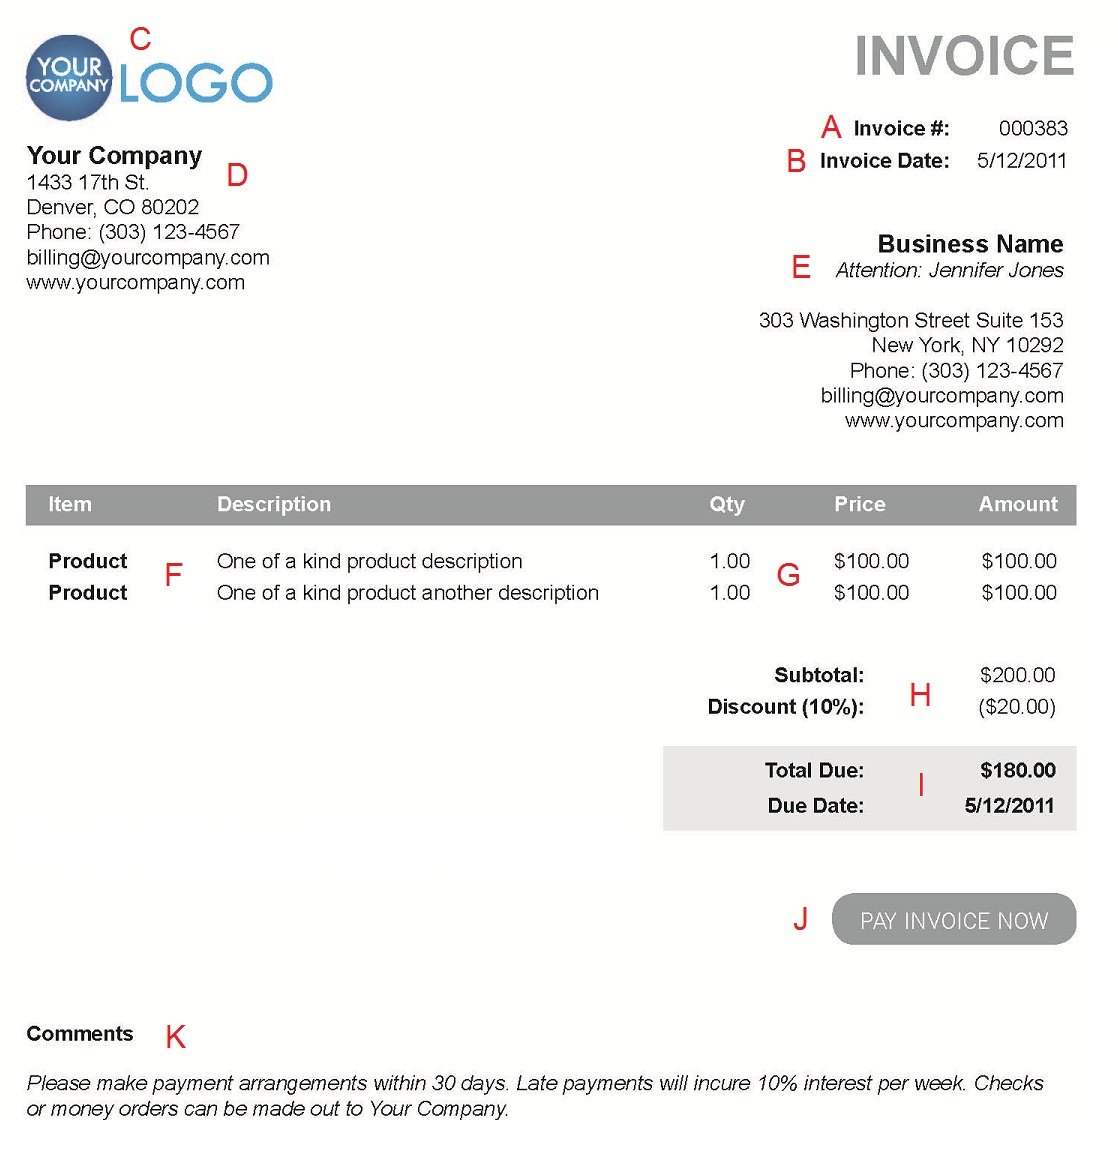 Usdgus  Seductive The  Different Sections Of An Electronic Payment Invoice With Interesting A  With Captivating Blank Cab Receipt Also Lost Receipt Form Air Force In Addition Cash Receipts And Disbursements And Sales Receipt Maker As Well As Make Your Own Receipt Book Additionally Purple Heart Donation Receipt From Paysimplecom With Usdgus  Interesting The  Different Sections Of An Electronic Payment Invoice With Captivating A  And Seductive Blank Cab Receipt Also Lost Receipt Form Air Force In Addition Cash Receipts And Disbursements From Paysimplecom